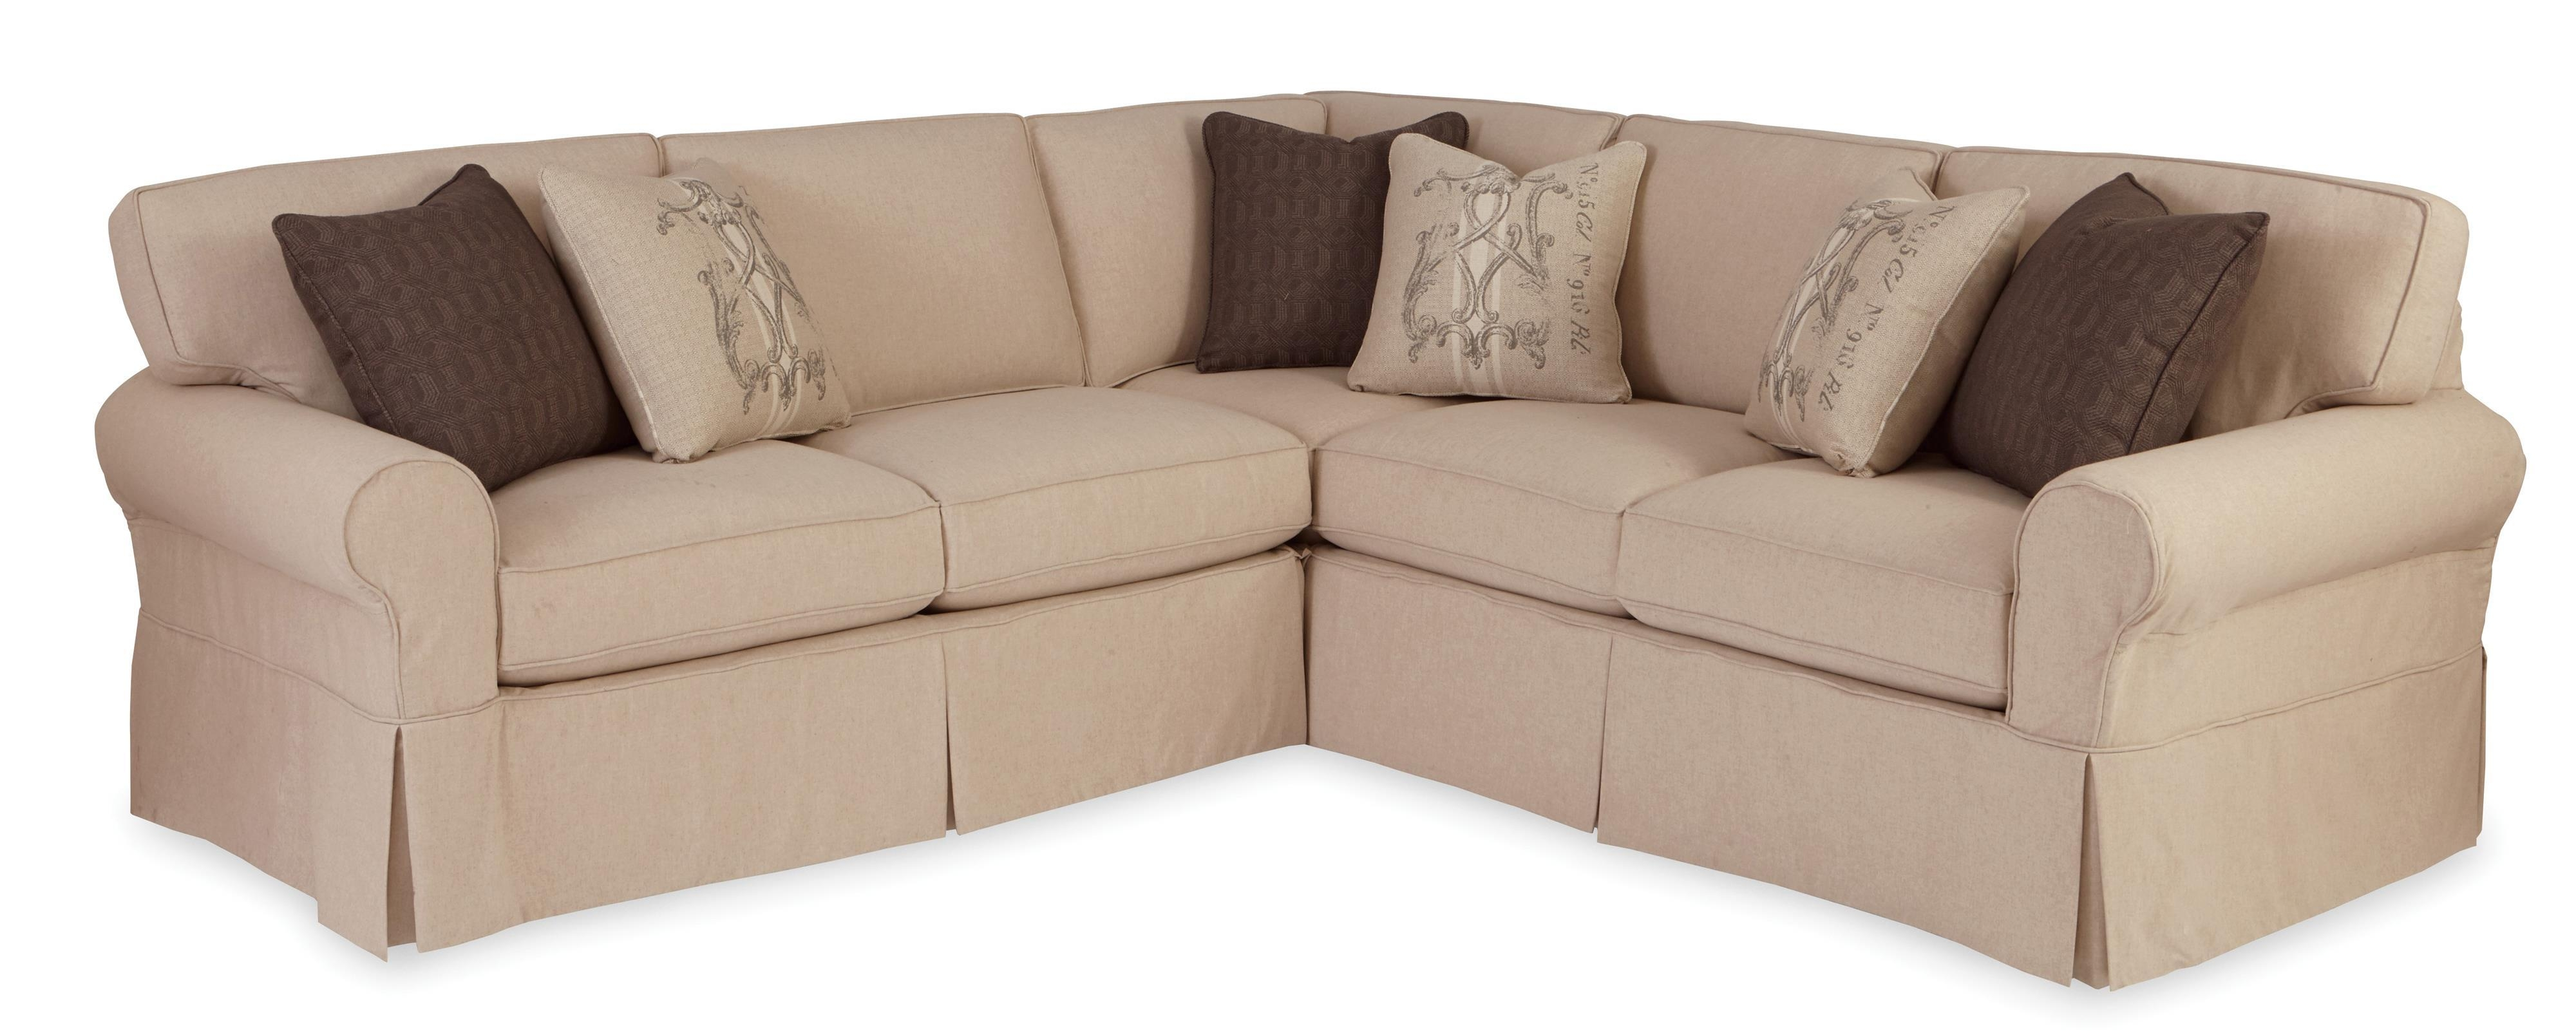 Furniture: Sectional Couch Cover | Club Chair Slipcovers Regarding Slipcover For Leather Sectional Sofas (Image 7 of 21)